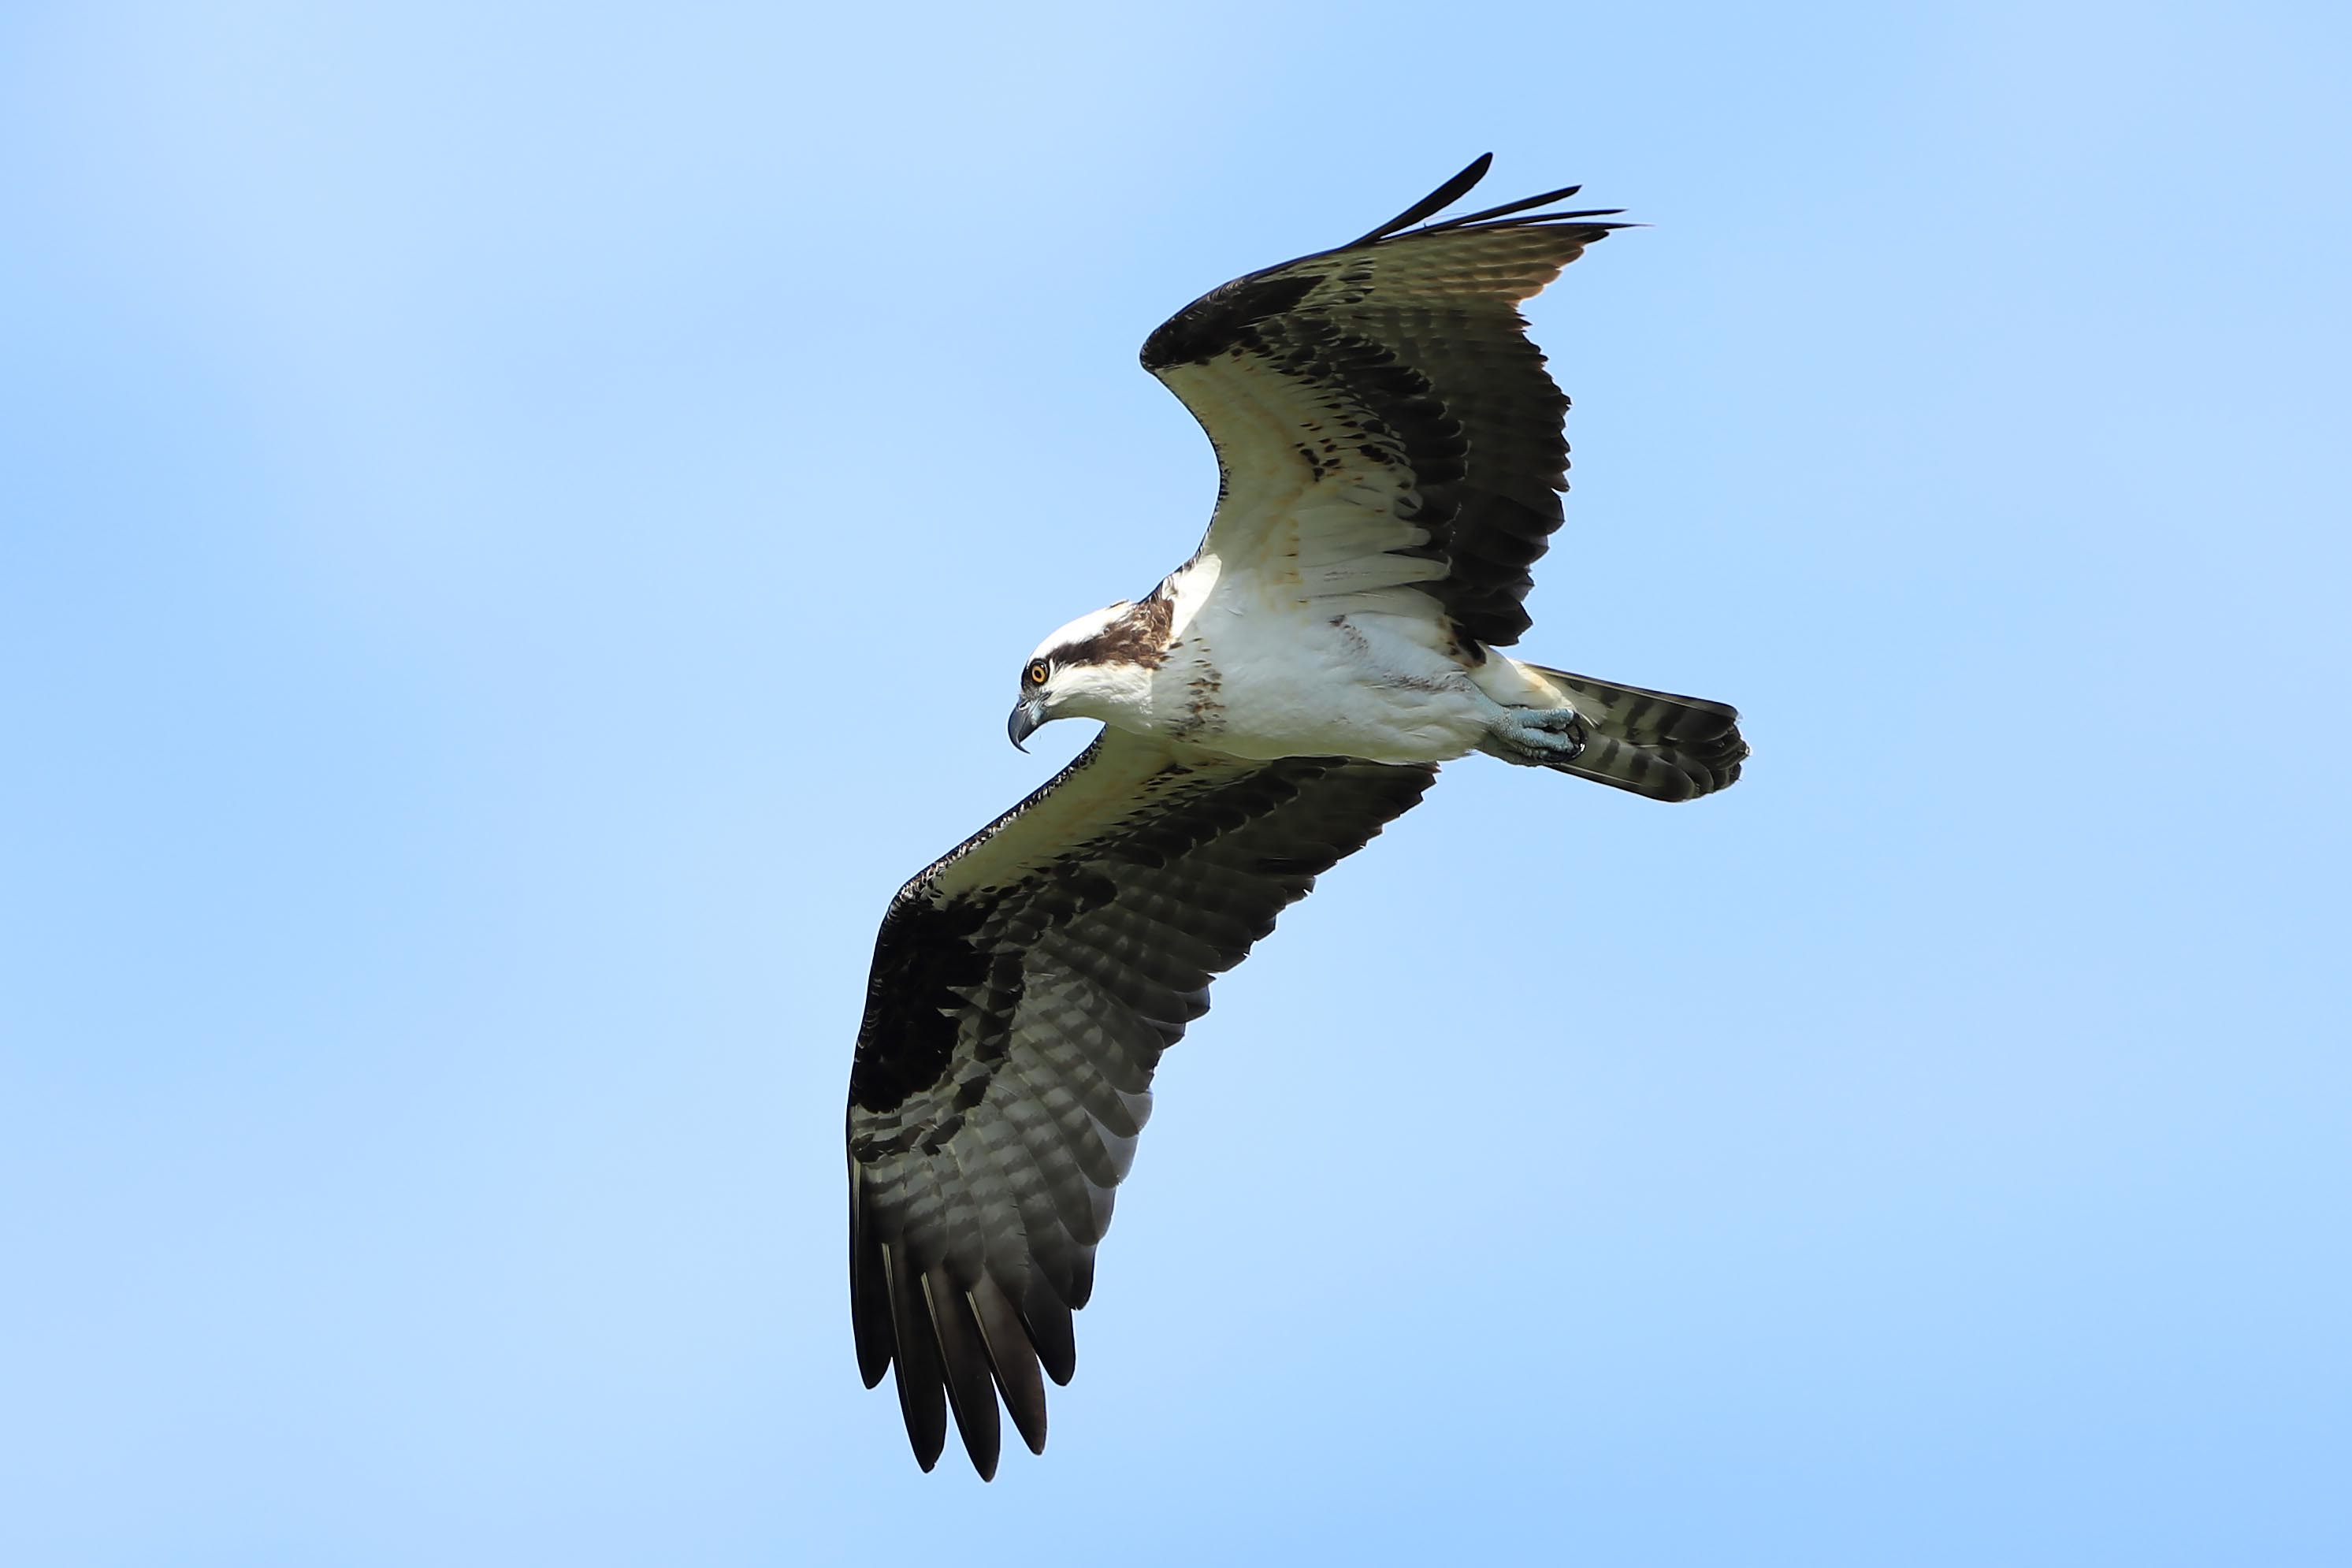 Osprey pictured in the sky